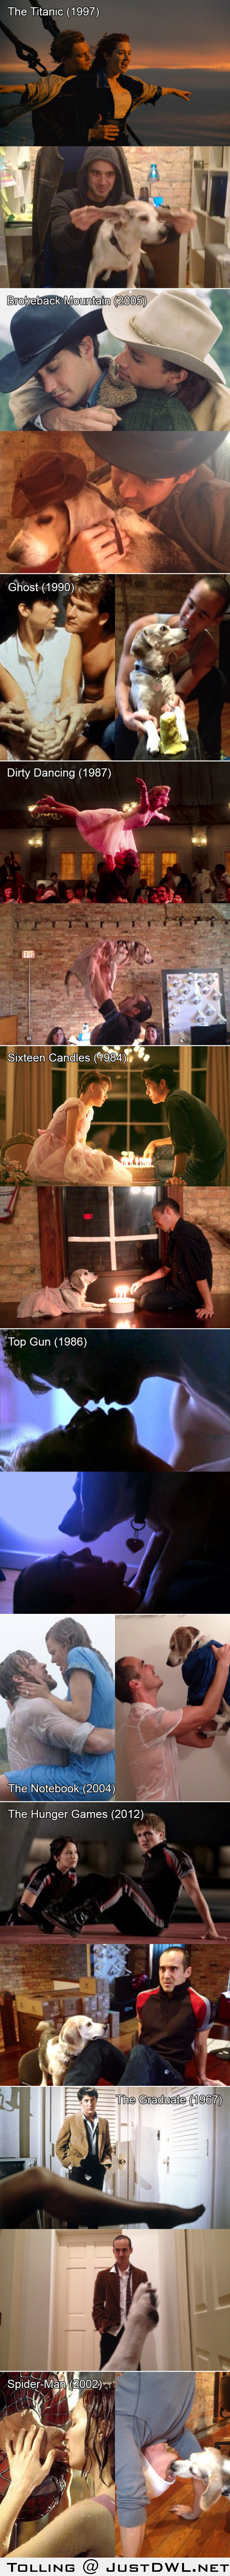 Movie scenes reenacted with a dog